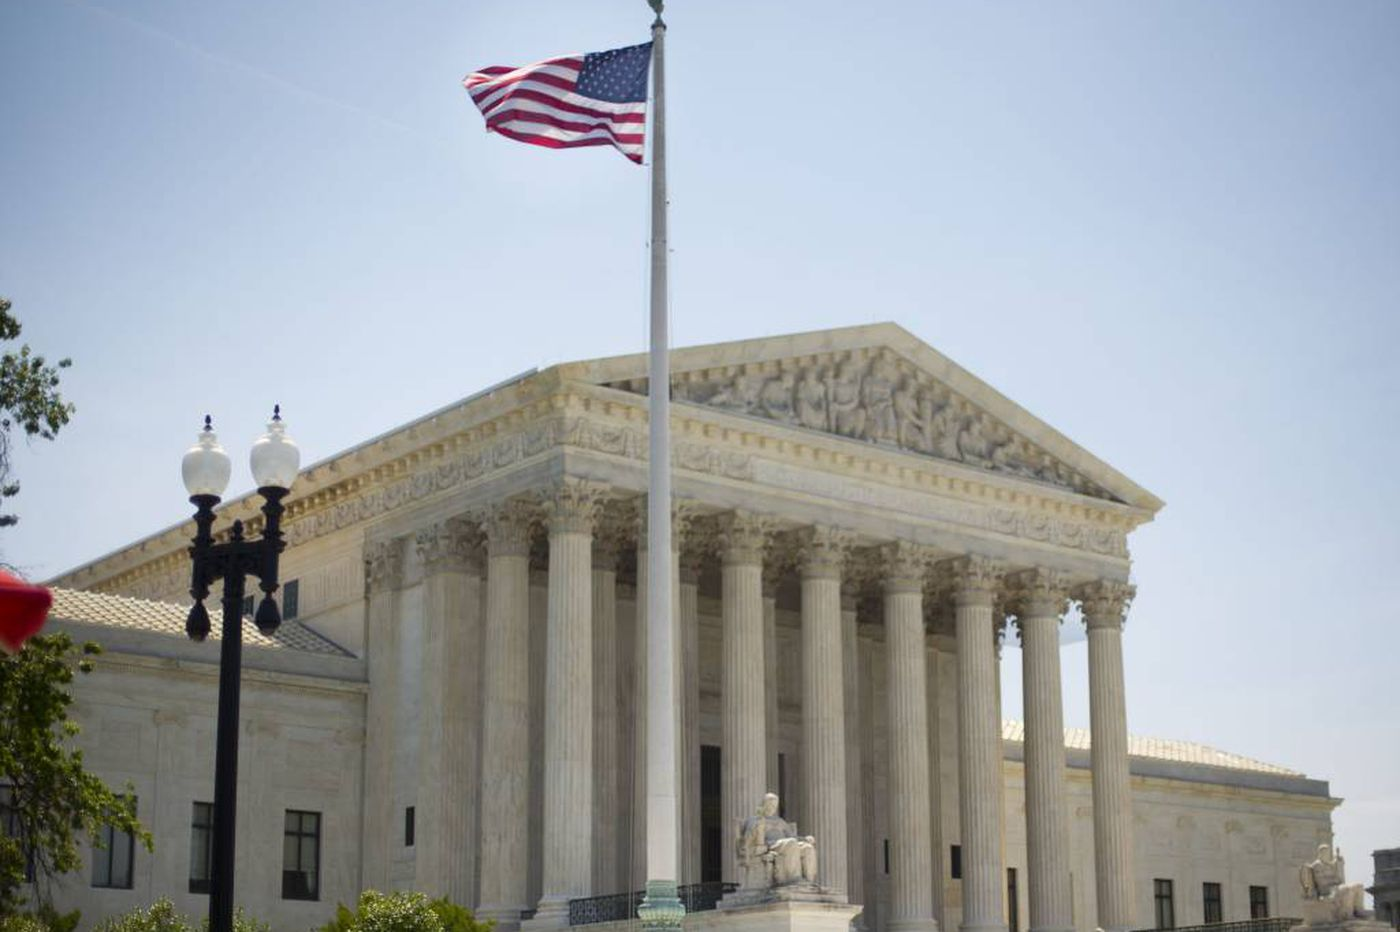 Court's union-fees ruling could have impact in N.J.